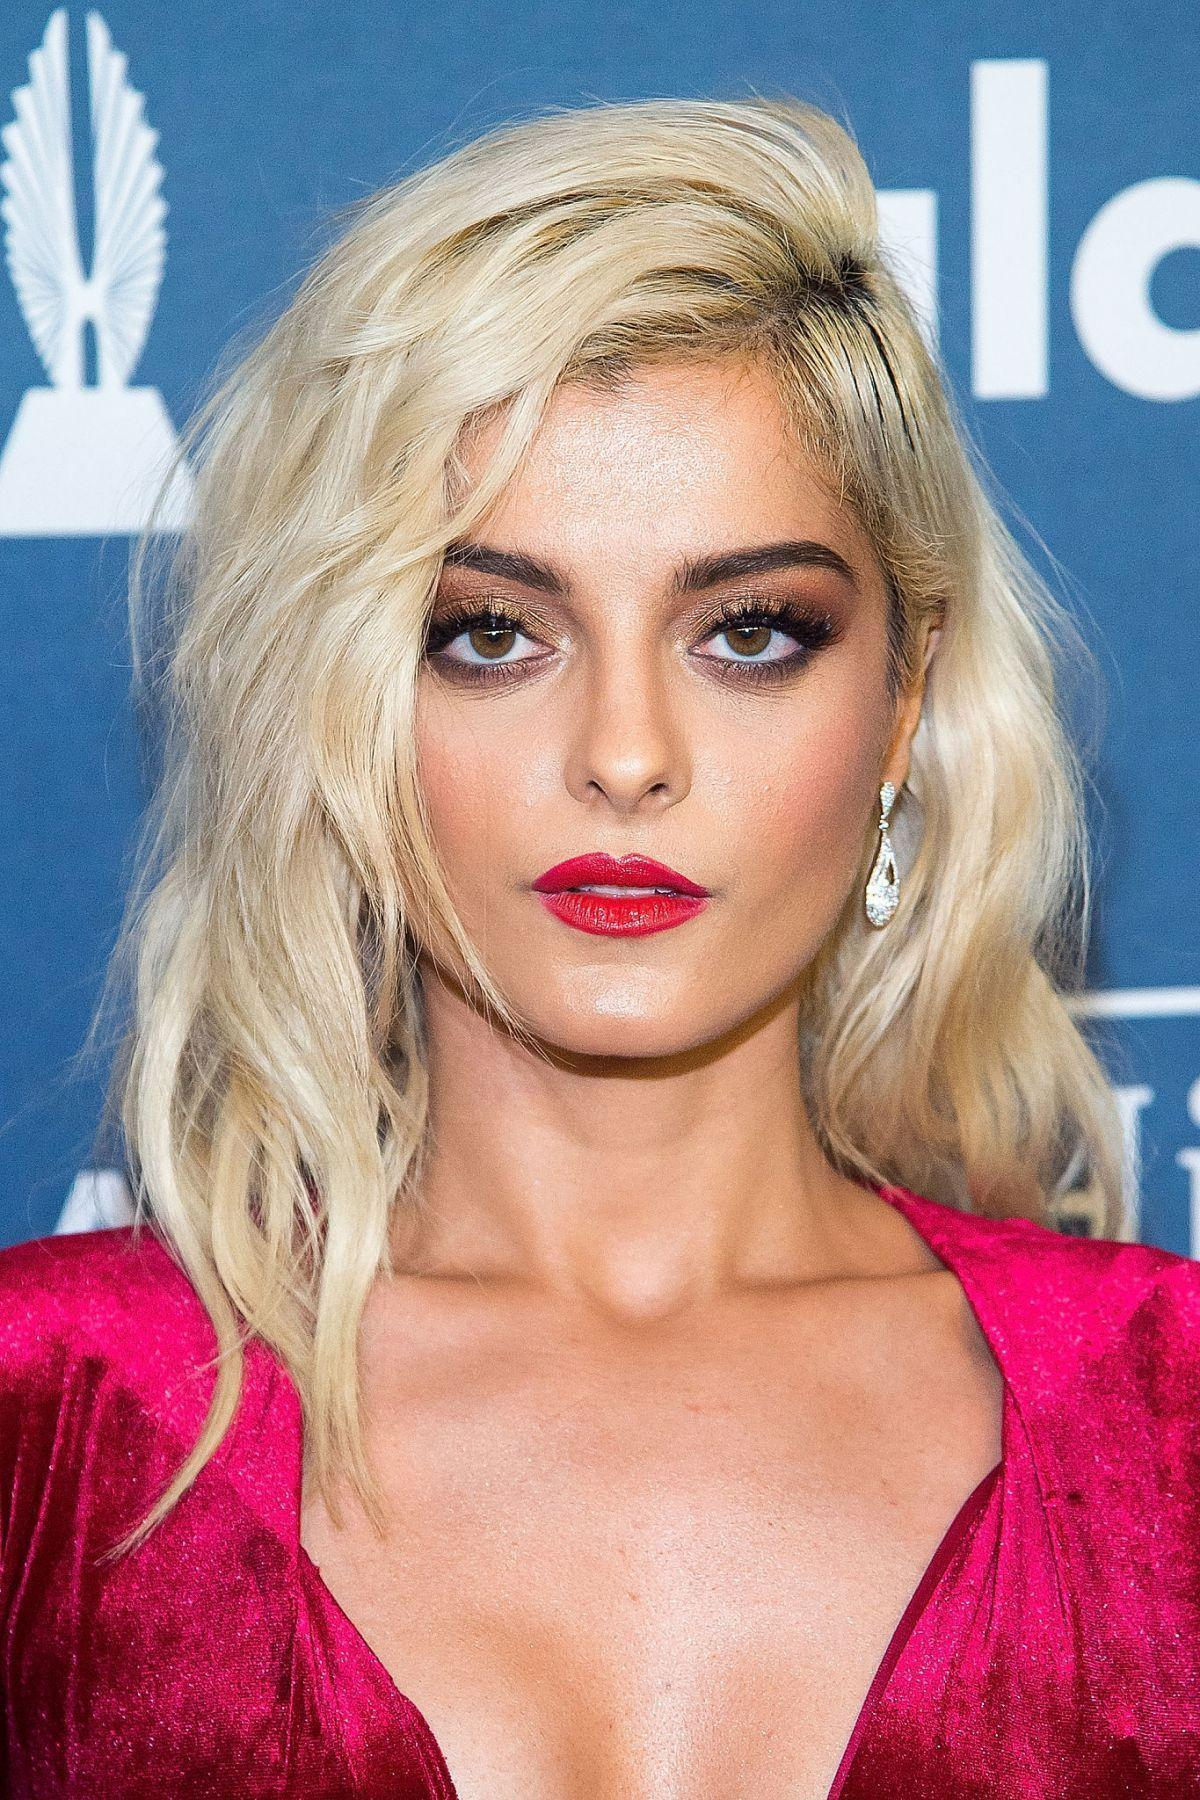 Image Result For Bebe Rexha